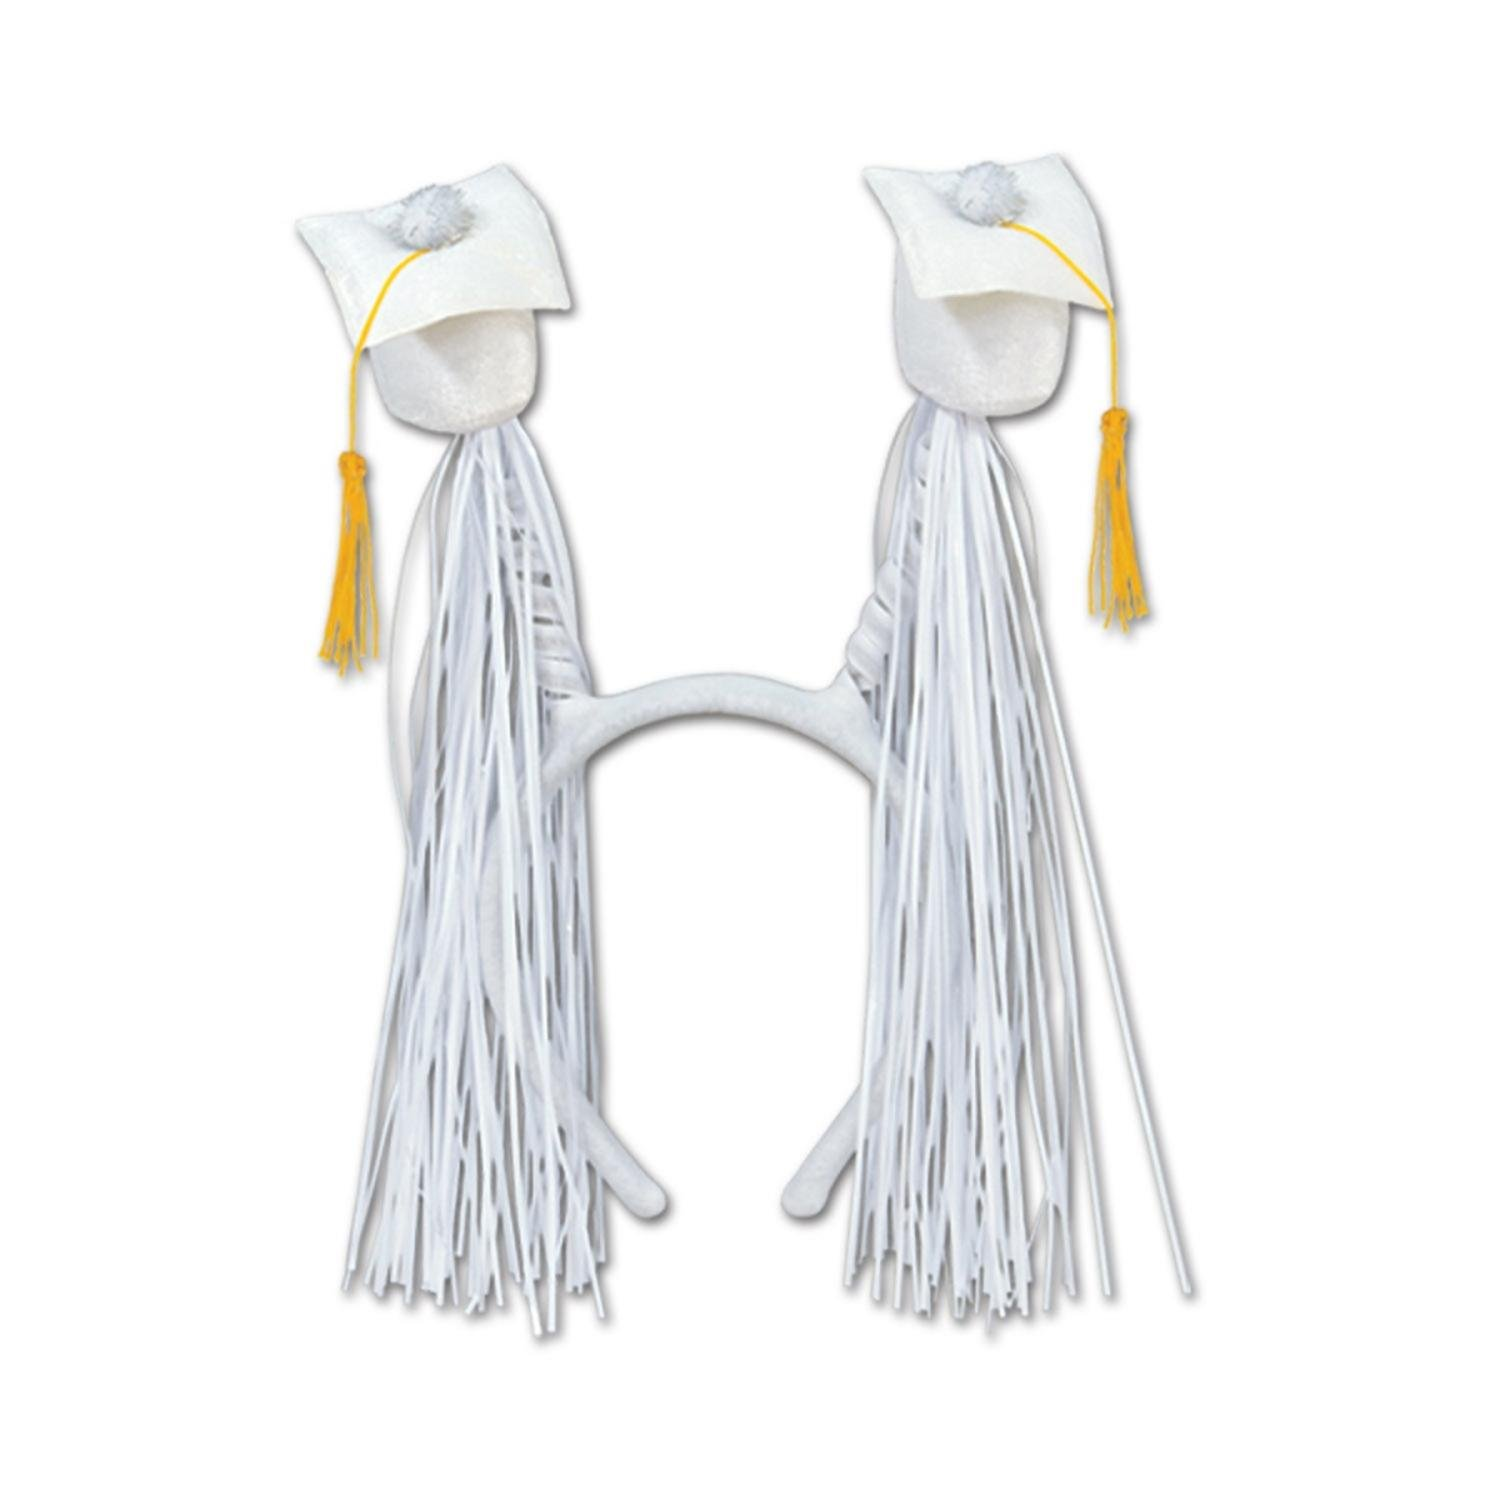 Club Pack of 12 White Graduation Cap with Fringe Bopper Headband Party Favors by Party Central